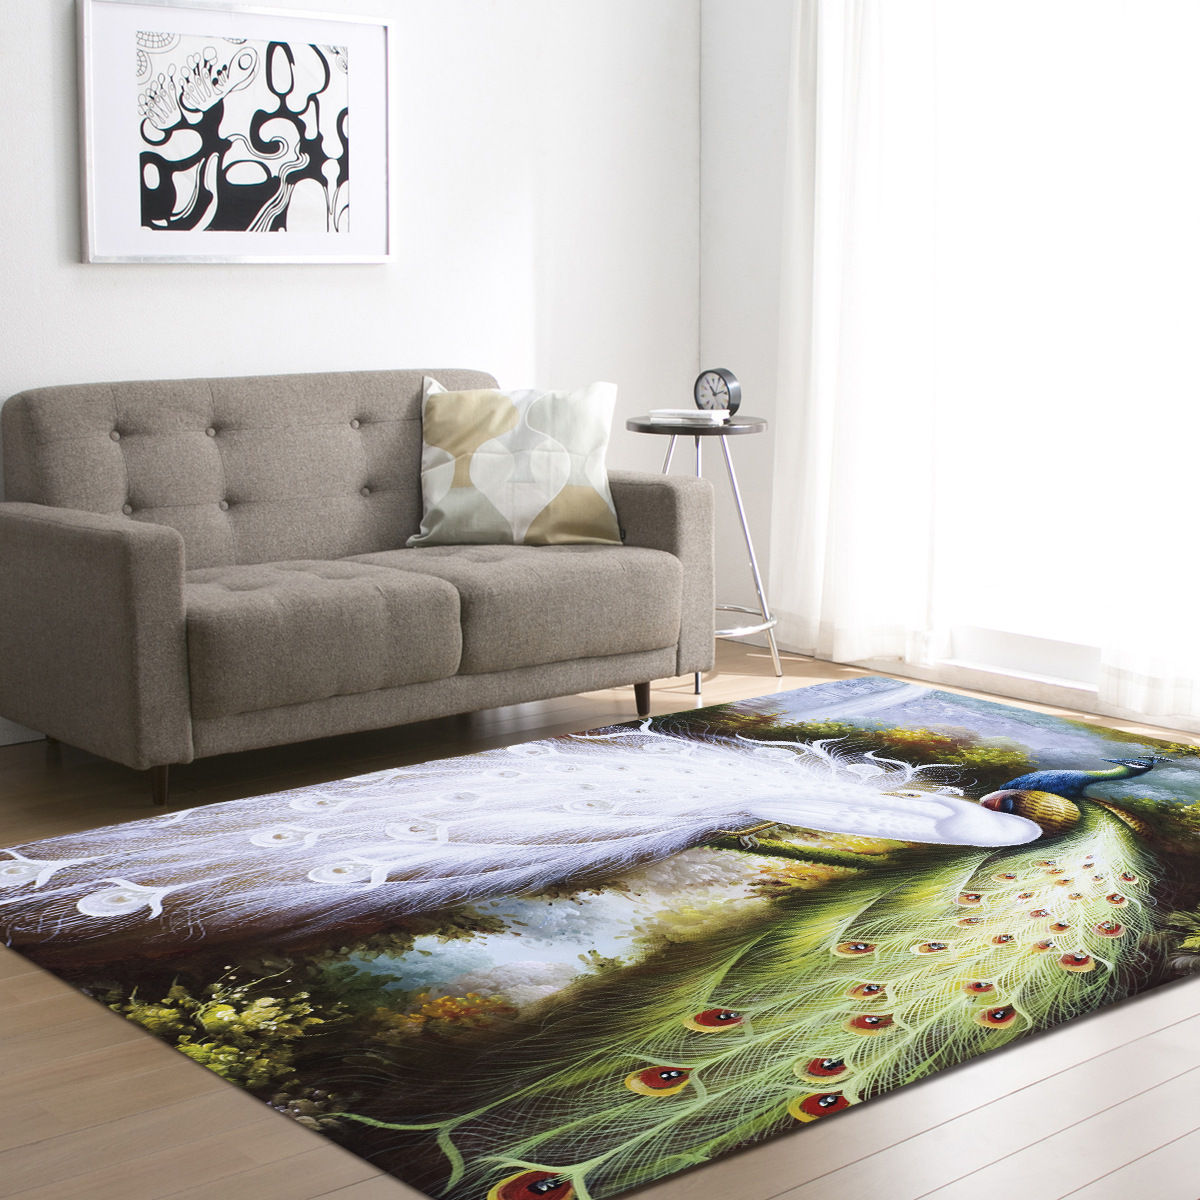 8 Styles DeMissir 3D Peacock Print Living Room Carpet kids Bedroom Rug alfombra tapete para sala tapis salon teppich vloerkleed